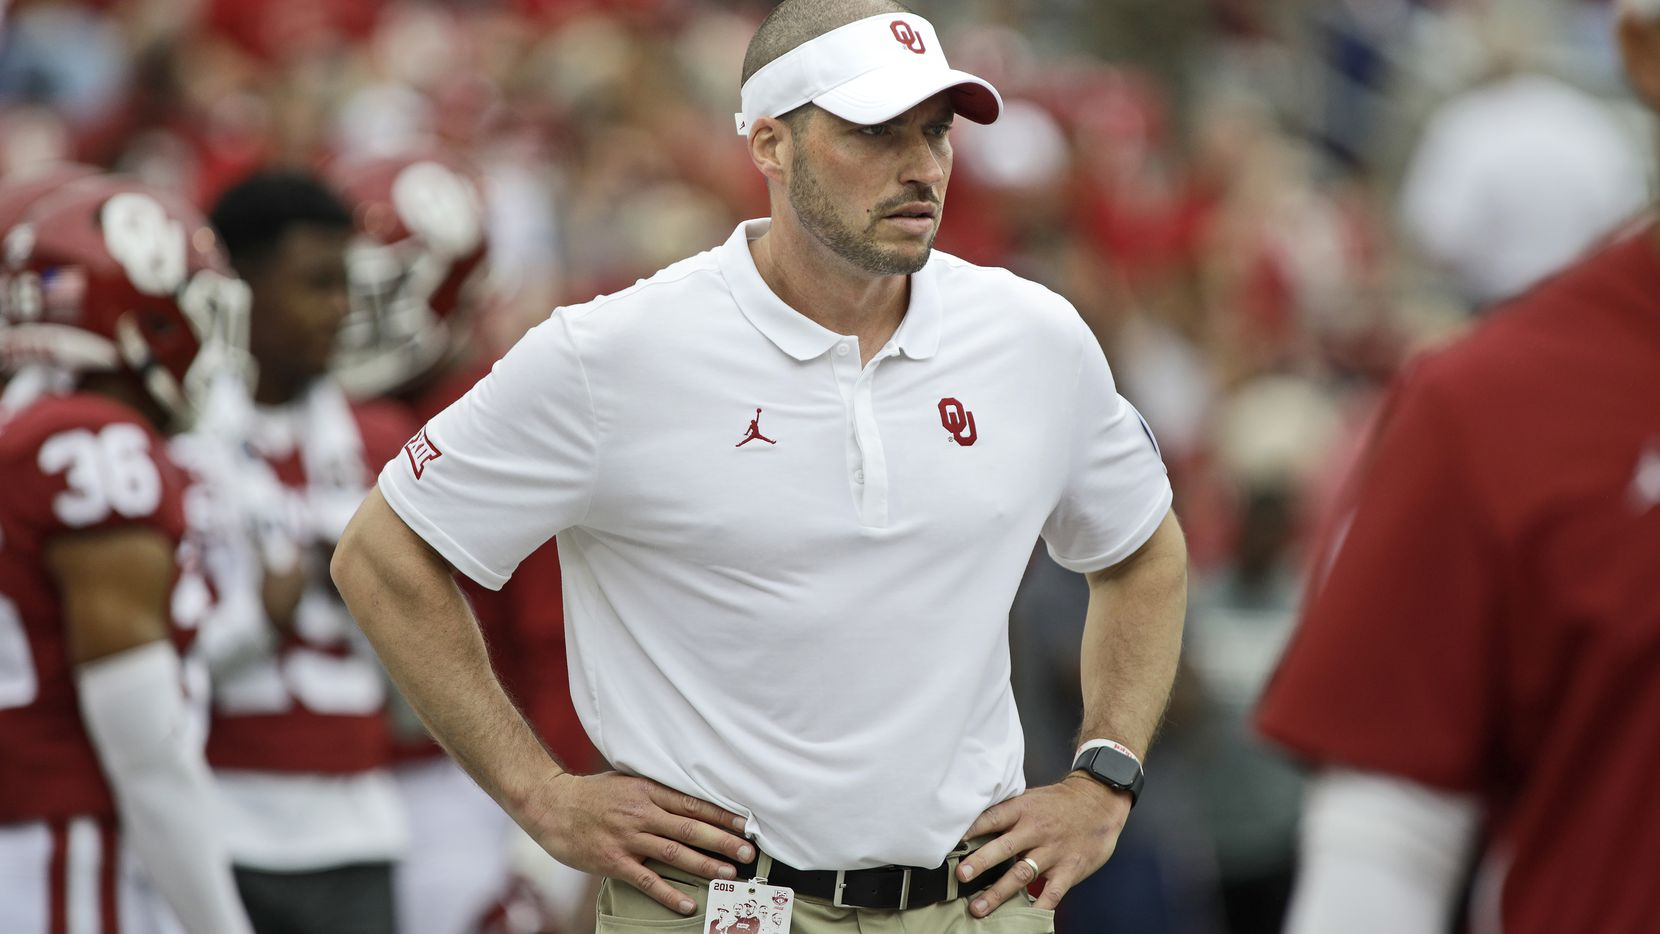 NORMAN, OK - SEPTEMBER 28: Defensive coordinator Alex Grinch observers warm ups before the game against the Texas Tech Red Raiders at Gaylord Family Oklahoma Memorial Stadium on September 28, 2019 in Norman, Oklahoma. The Sooners defeated the Red Raiders 55-16.